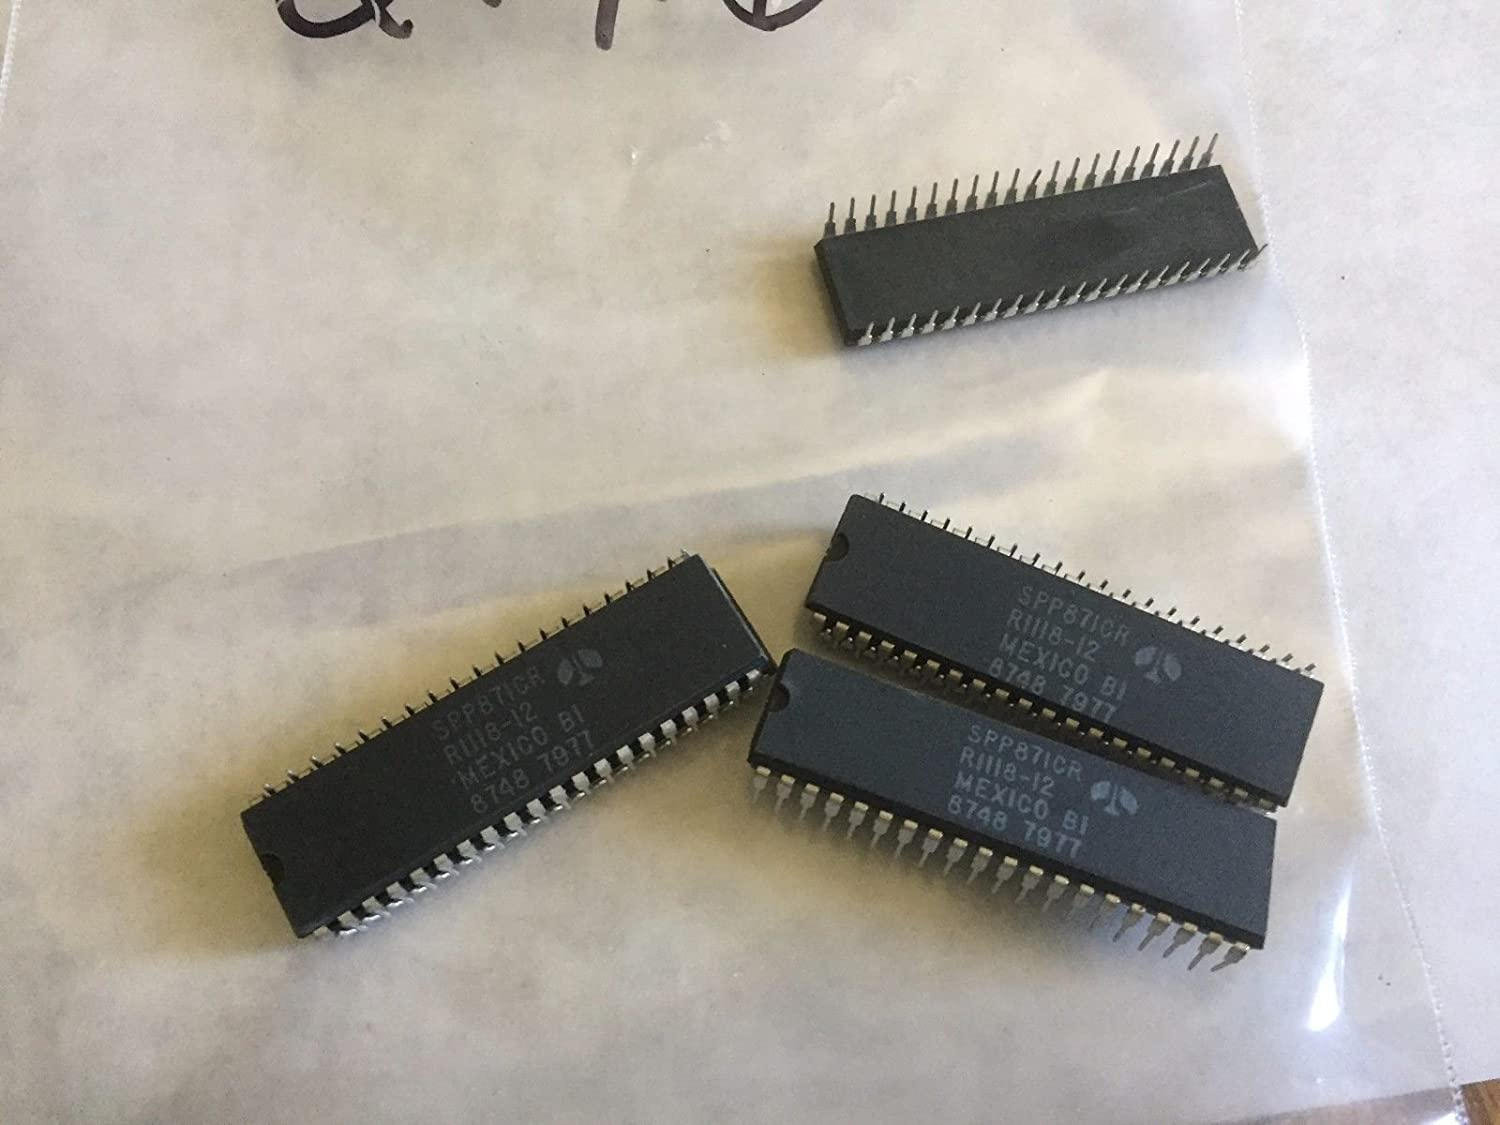 BOXYP NEW LOT 6 GENERAL ELECTRIC SPP871CR,R1118-12,8748 7977 ATHENA SPP871CR